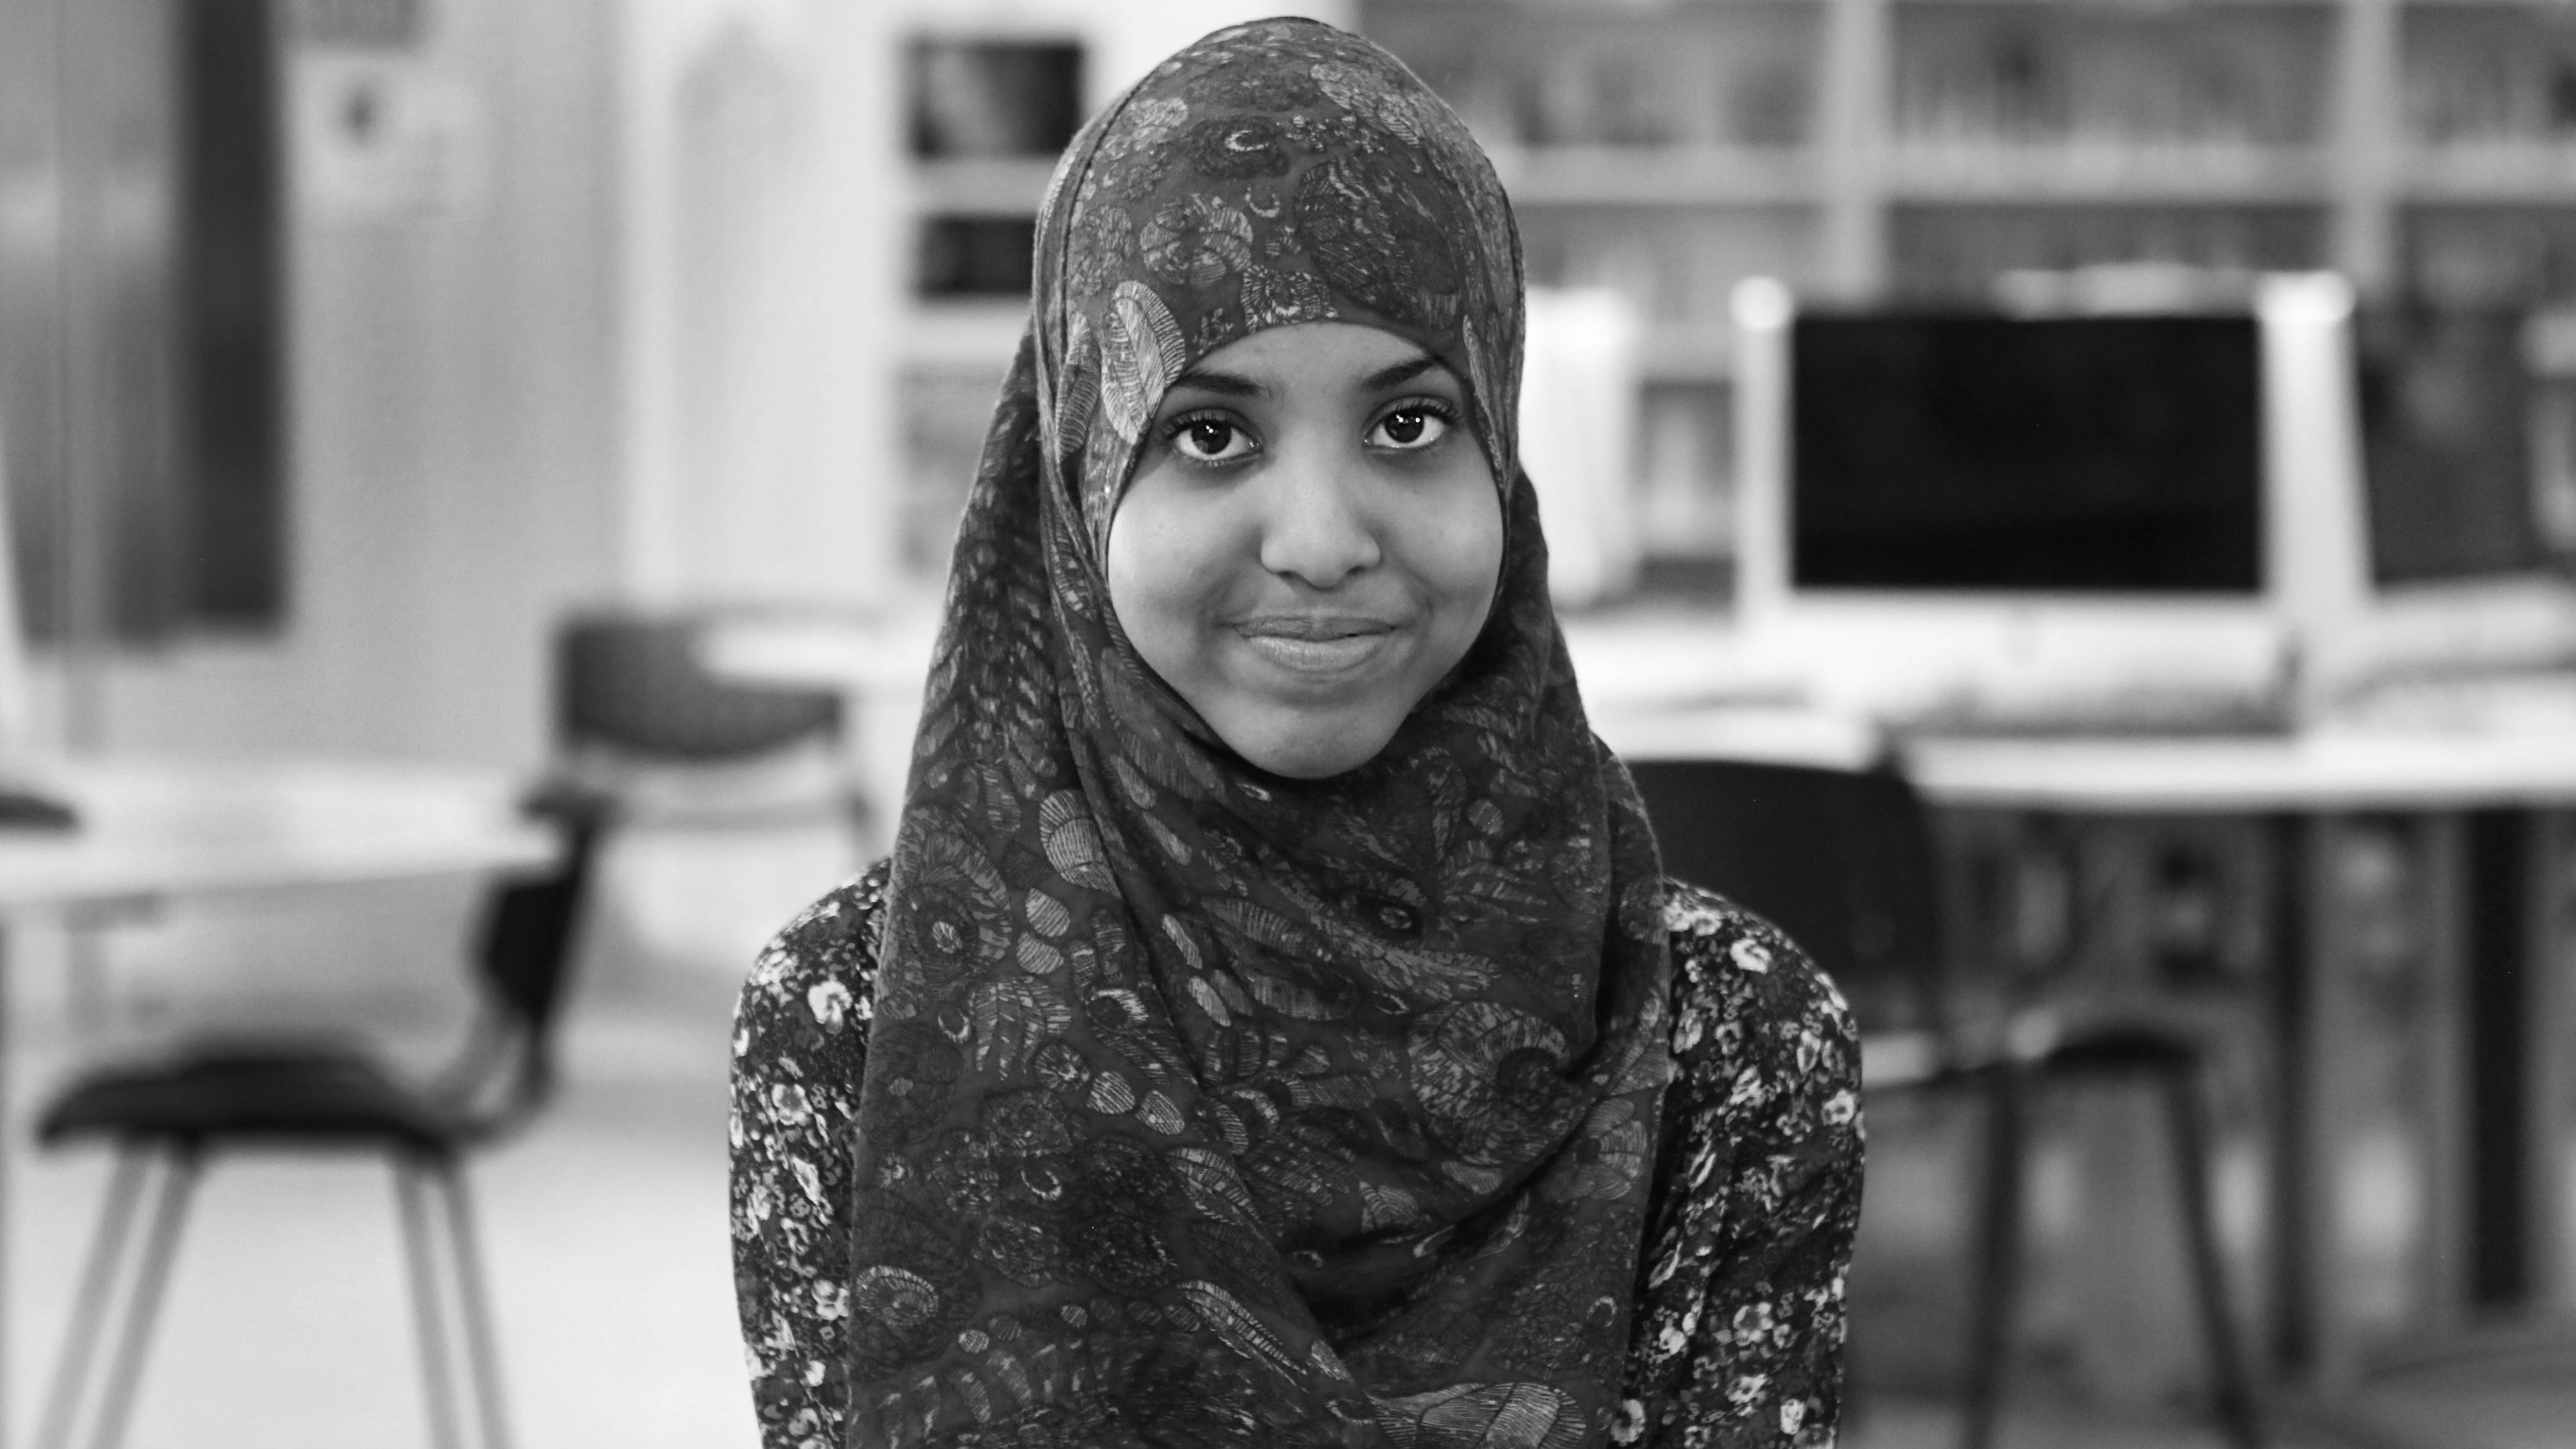 An Interview with Fahma Mohamed